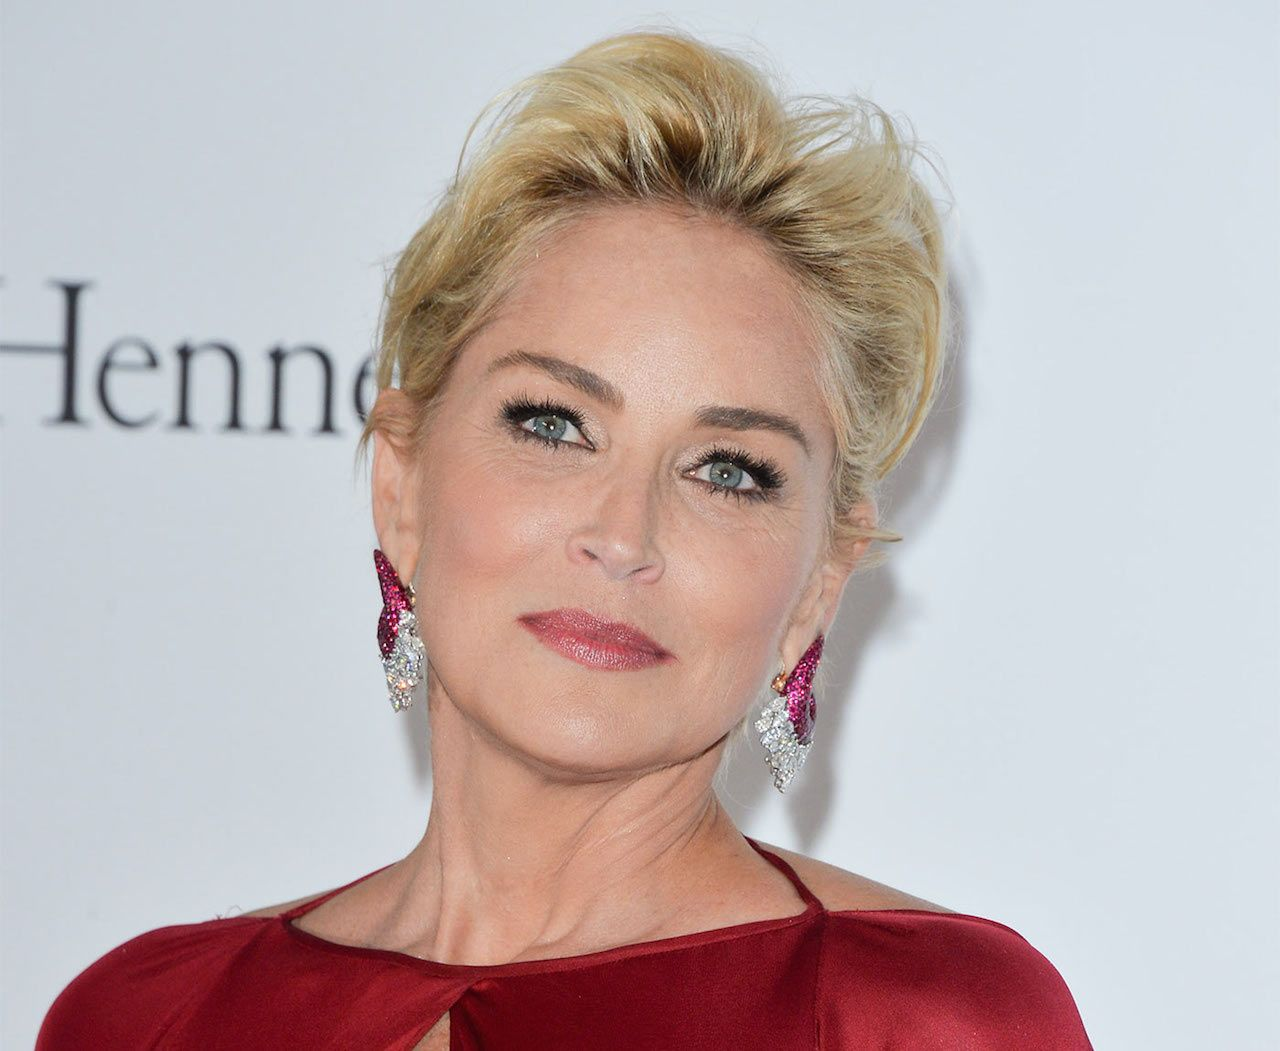 Sharon Stone The Top Of The Over Forty Notonlytwenty